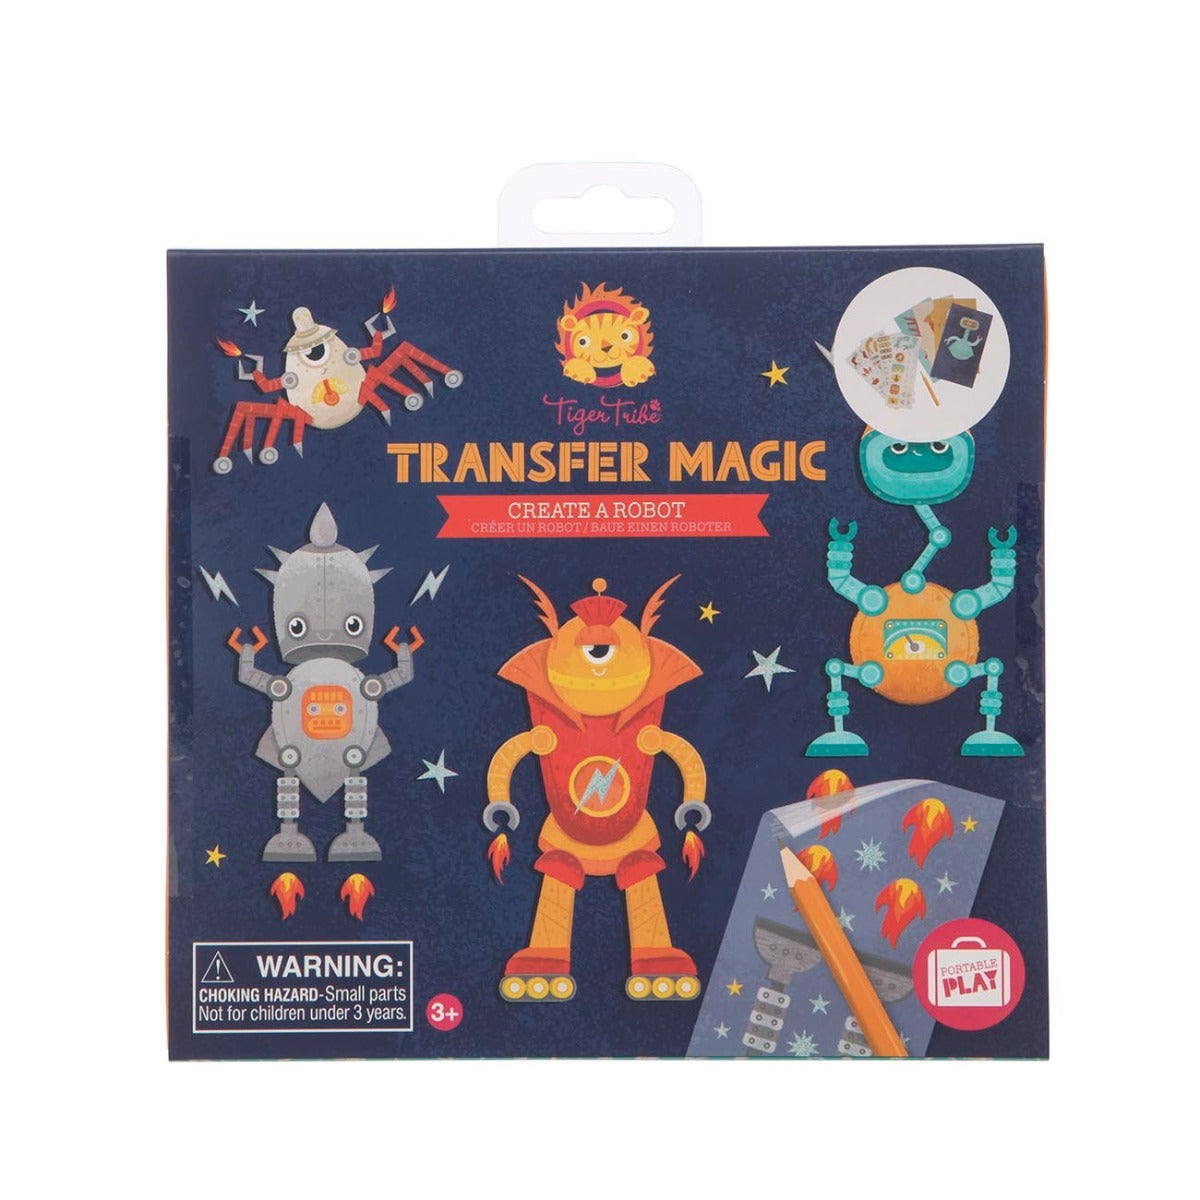 Tiger Tribe Transfer Magic Create a Robot box